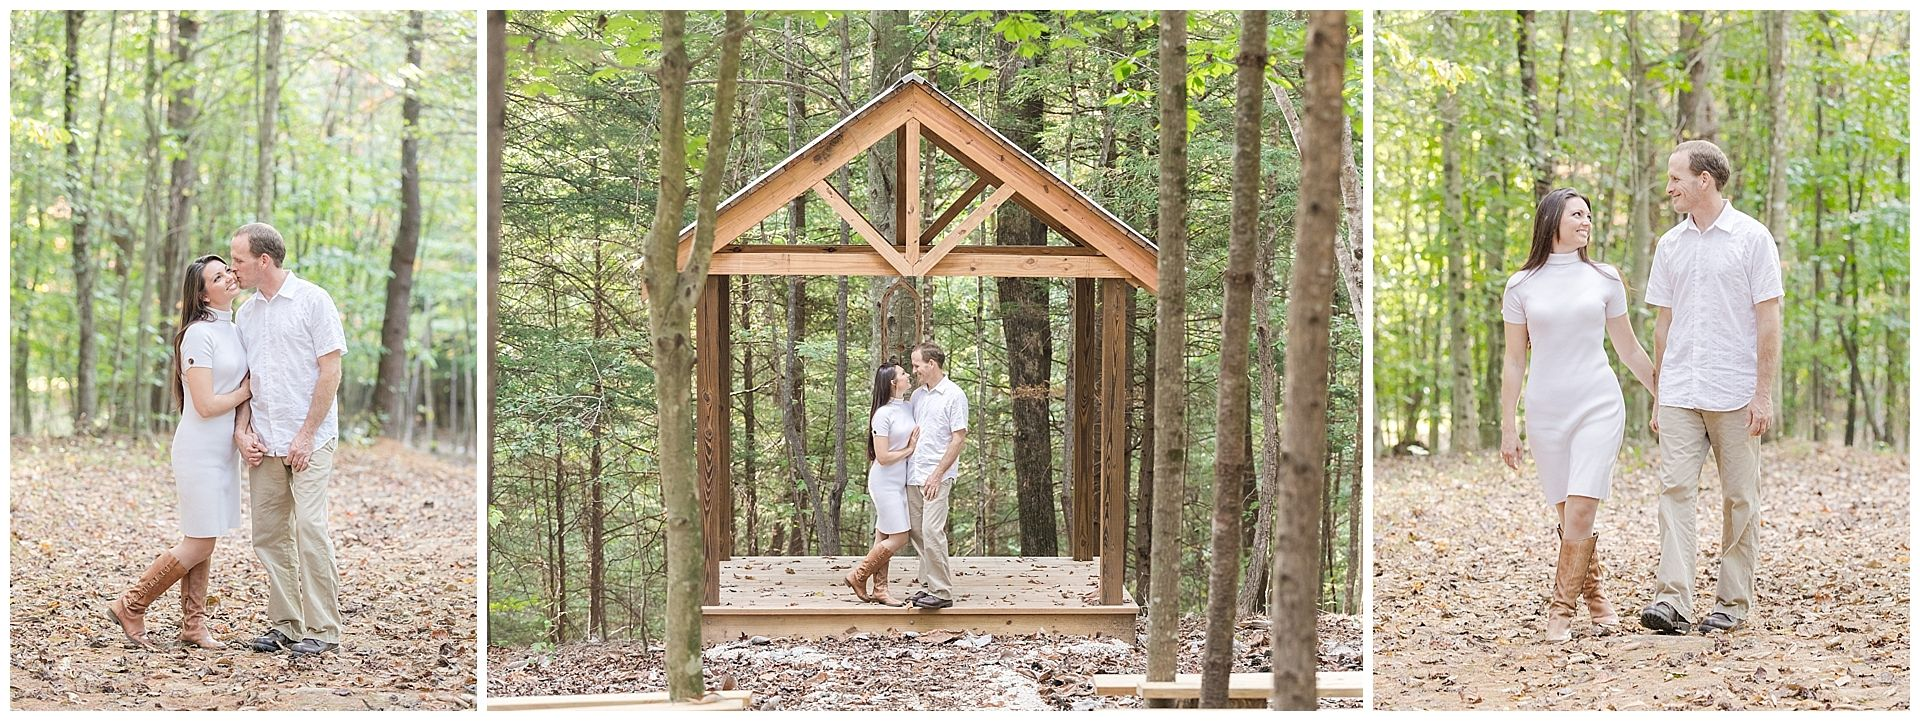 Events At Hemlock Springs Is A Spectacular New Wedding Venue Located In The Red River Gorge Campton Kentucky Beautiful Location For An Outdoor